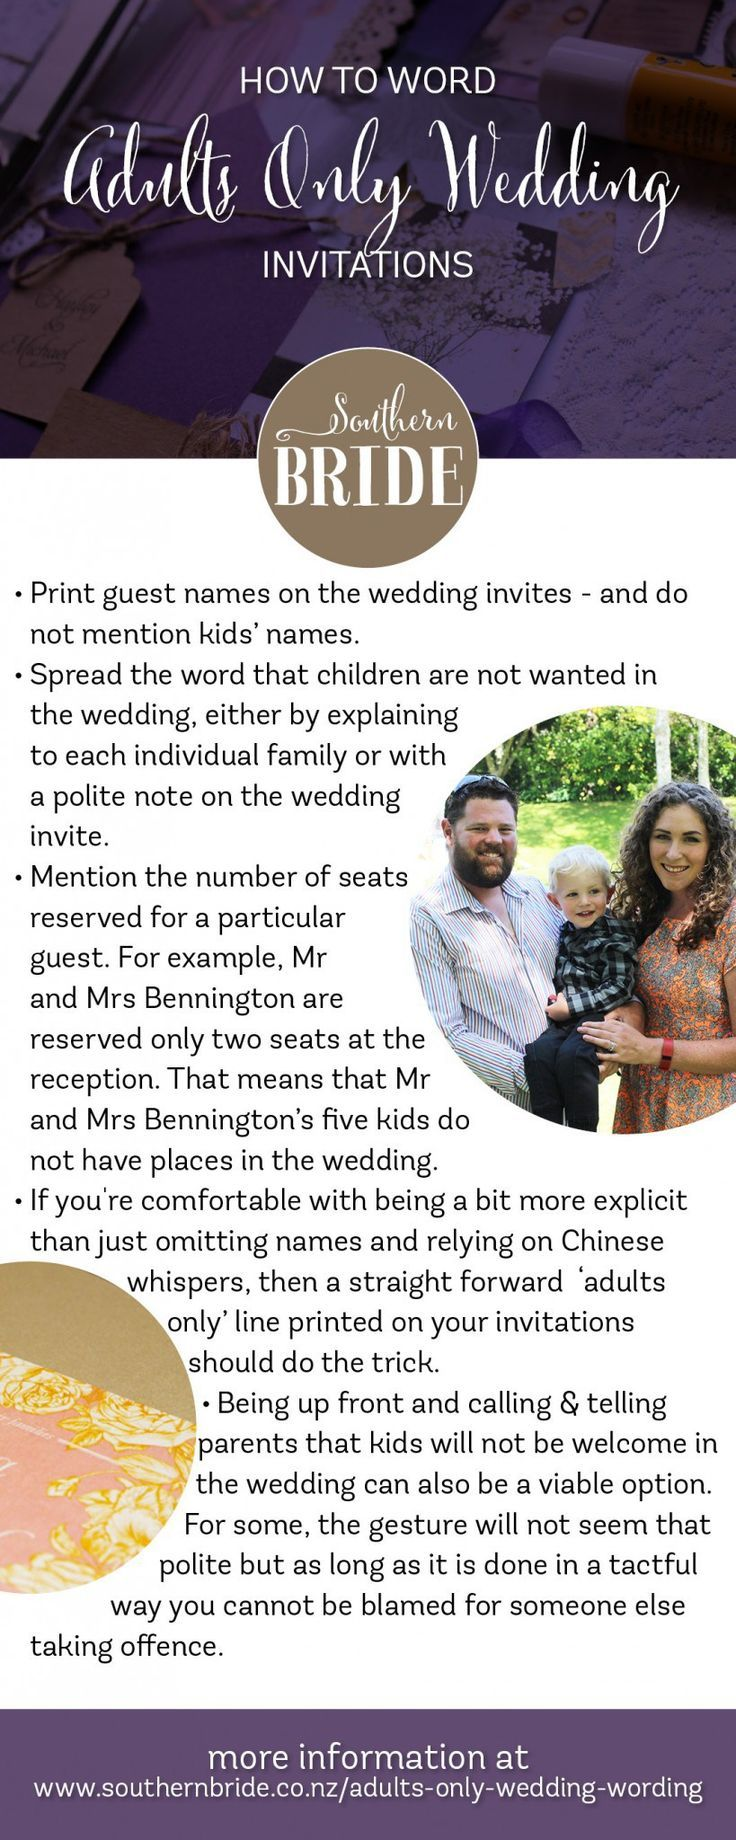 How To Tell Guests You Are Having An Adults Only Wedding Invitation WordingWedding StationaryWedding EtiquetteSouthern